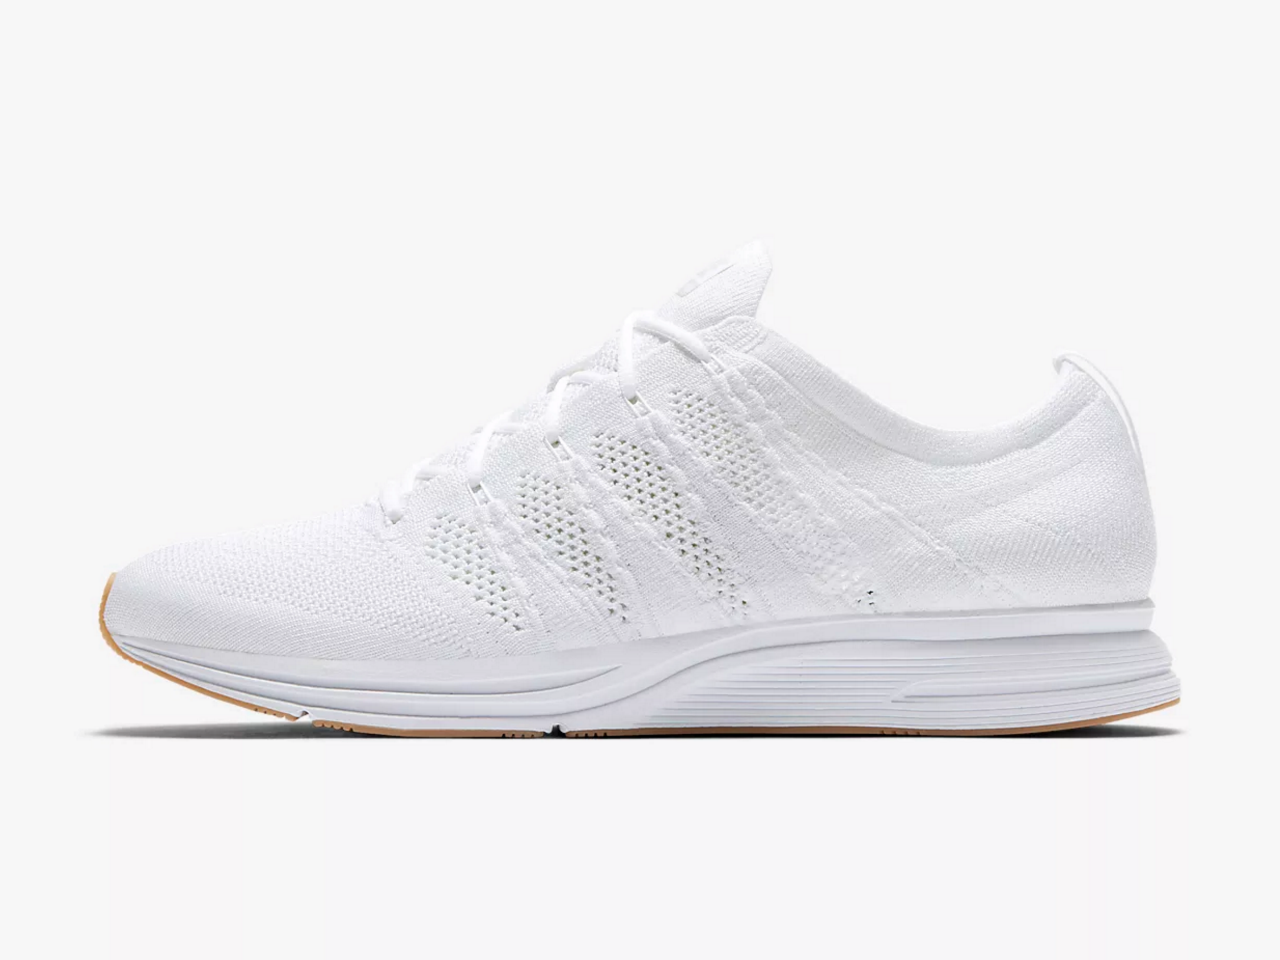 A Nike flyknit trainer: We show you tried and tested ways to clean white shoes and sneakers